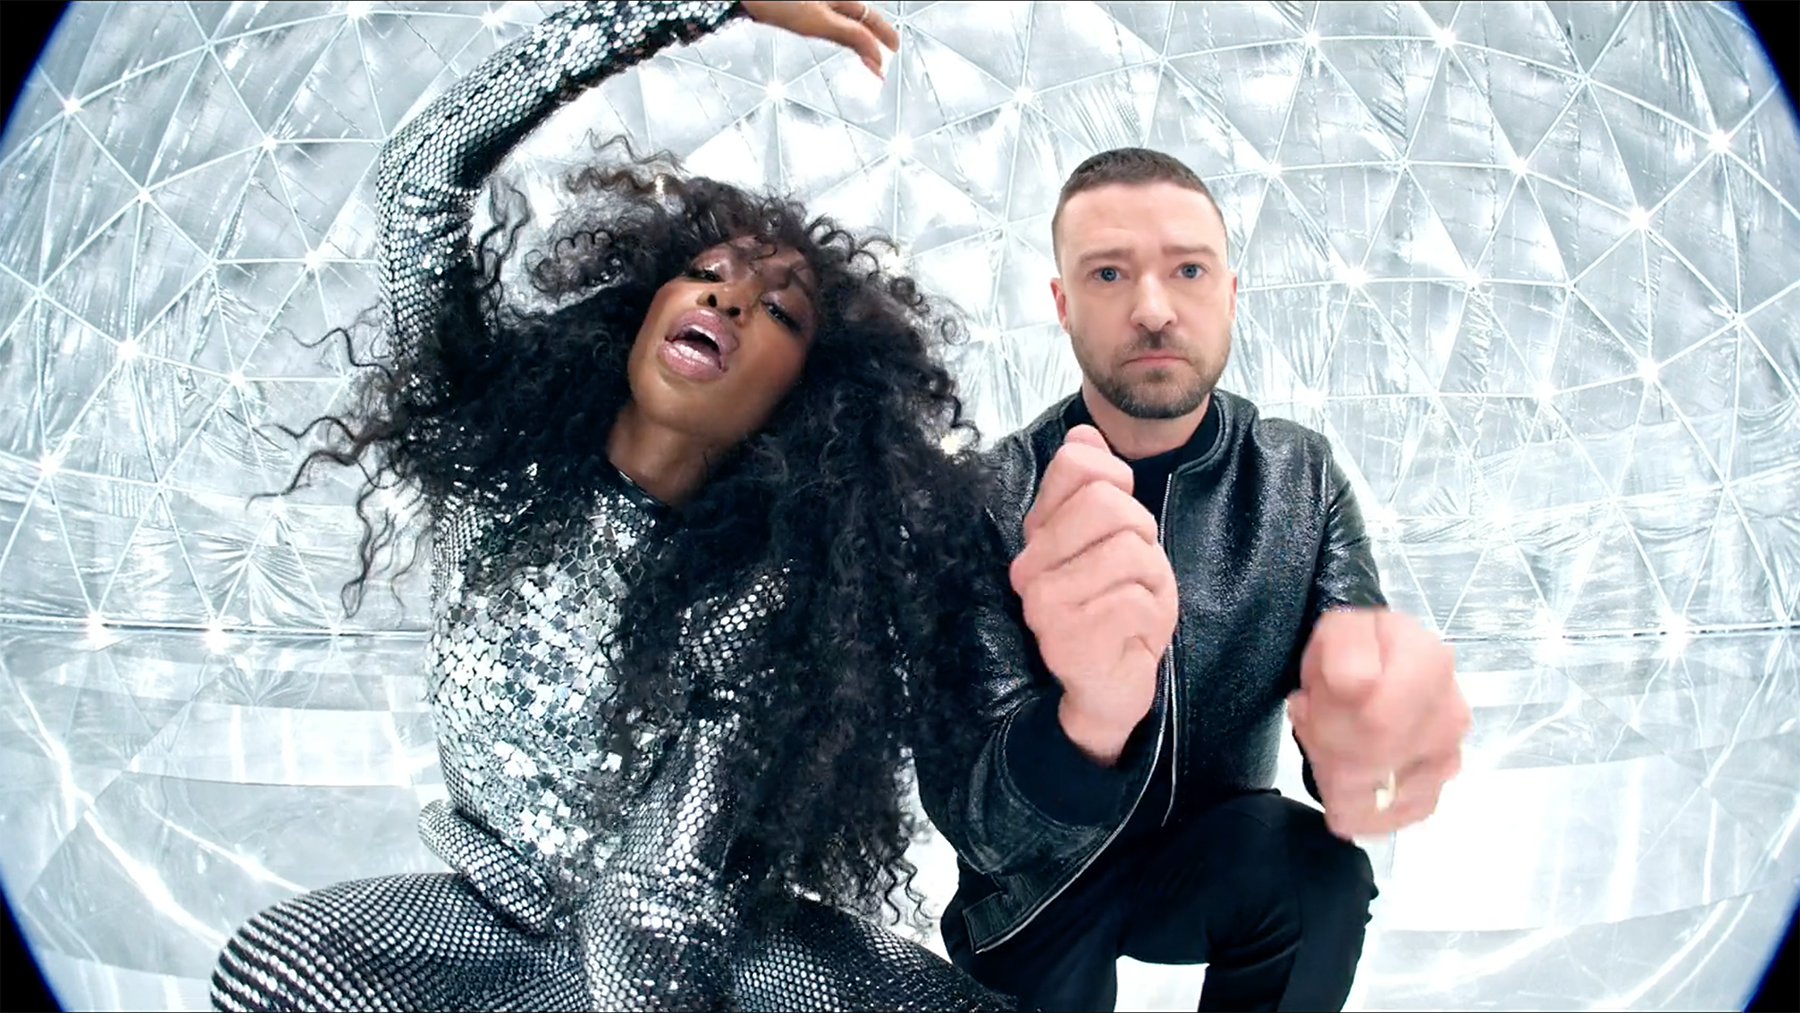 Justin Timberlake, SZA Get Funky on 'The Other Side'